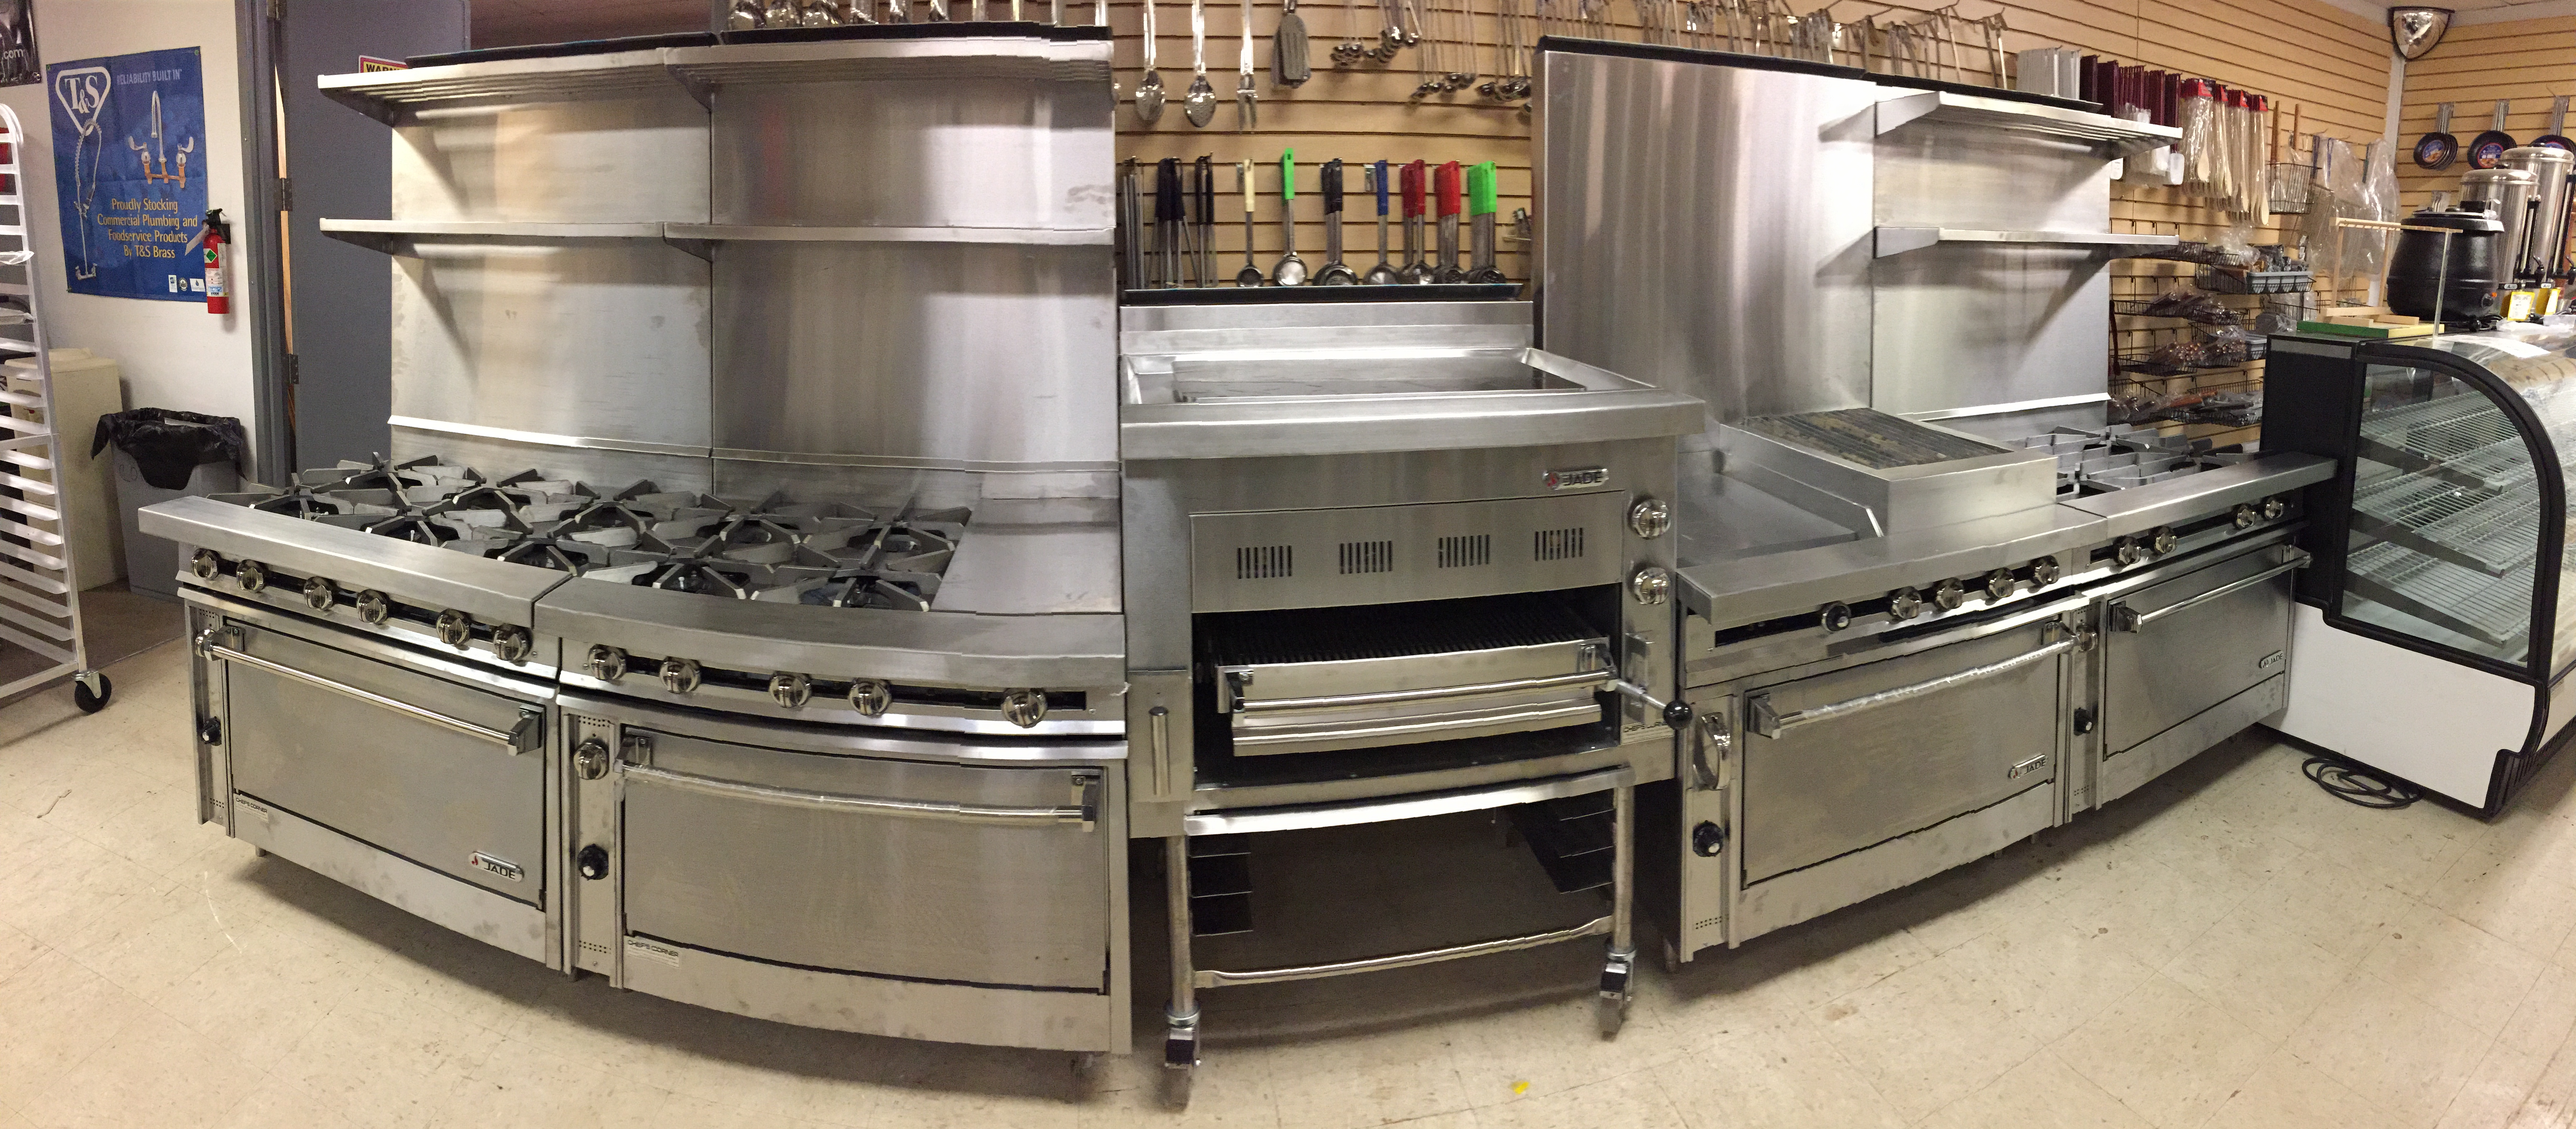 White beeches golf and country club cooking equipment for Culinary kitchen equipment